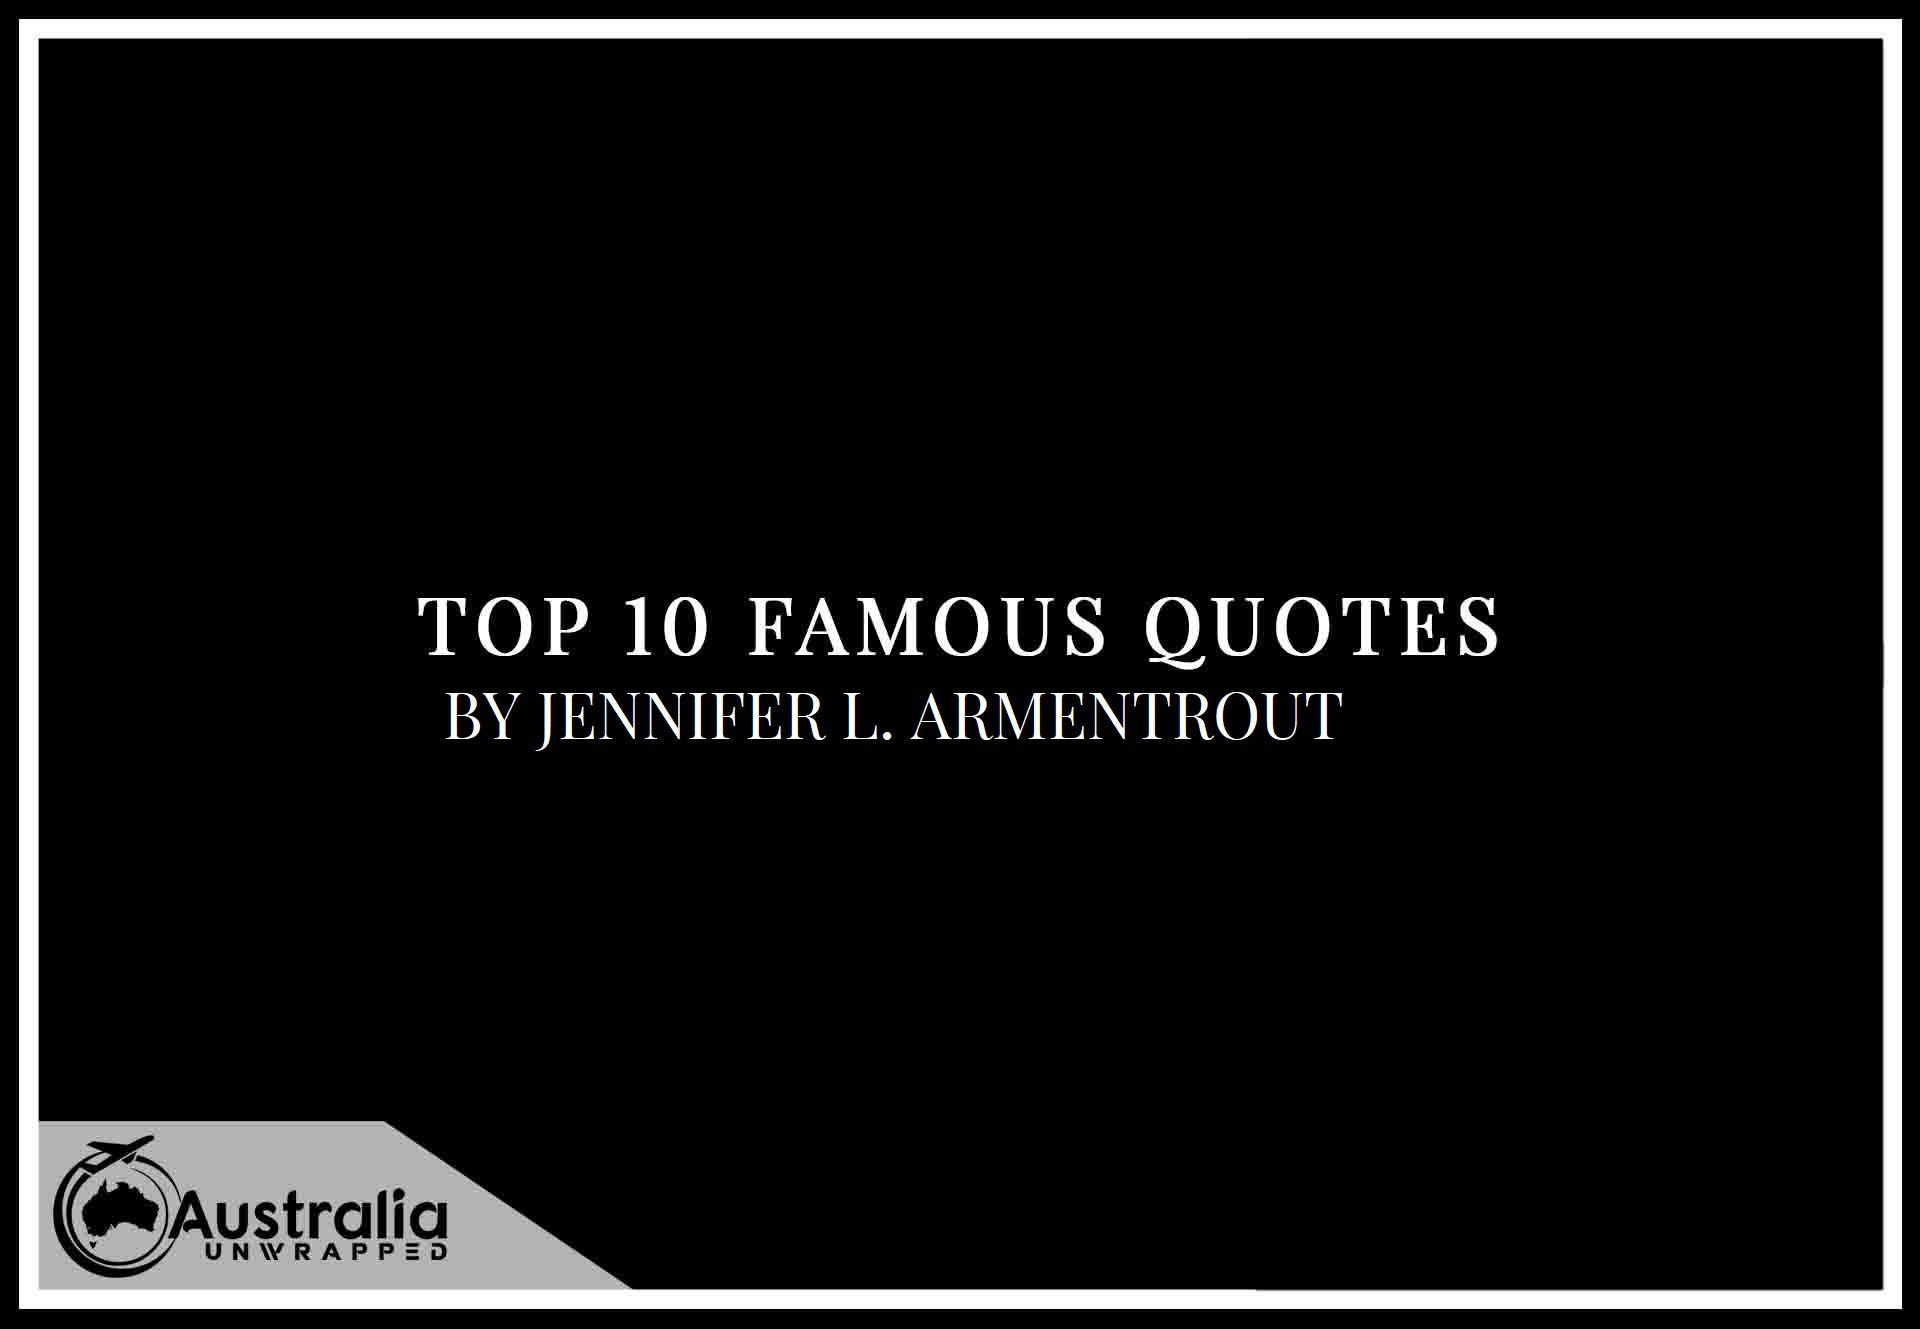 Top 10 Famous Quotes by Author Jennifer L. Armentrout